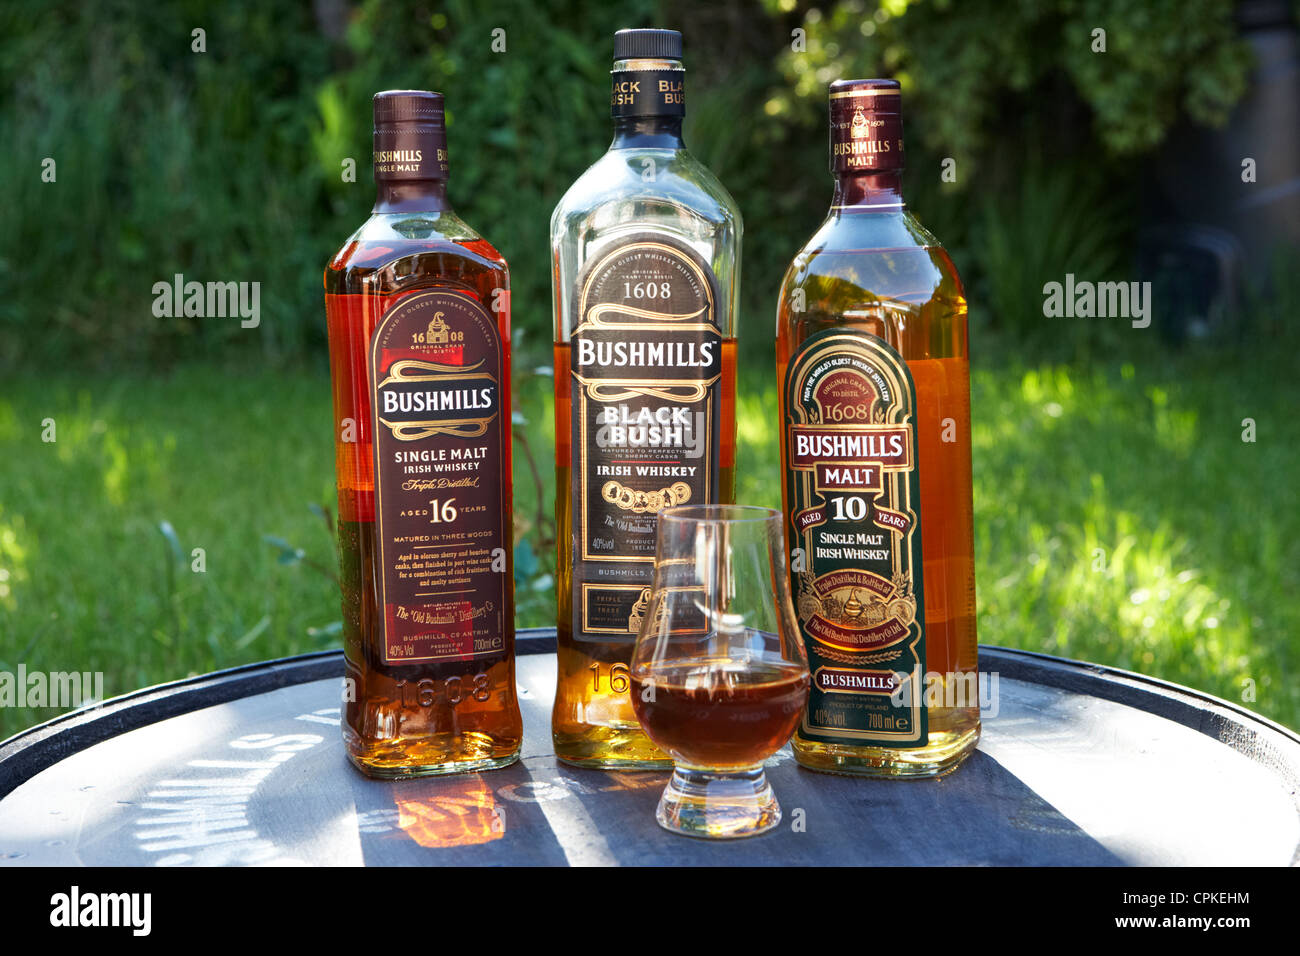 selection of bushmills irish malt whiskey county antrim northern ireland - Stock Image